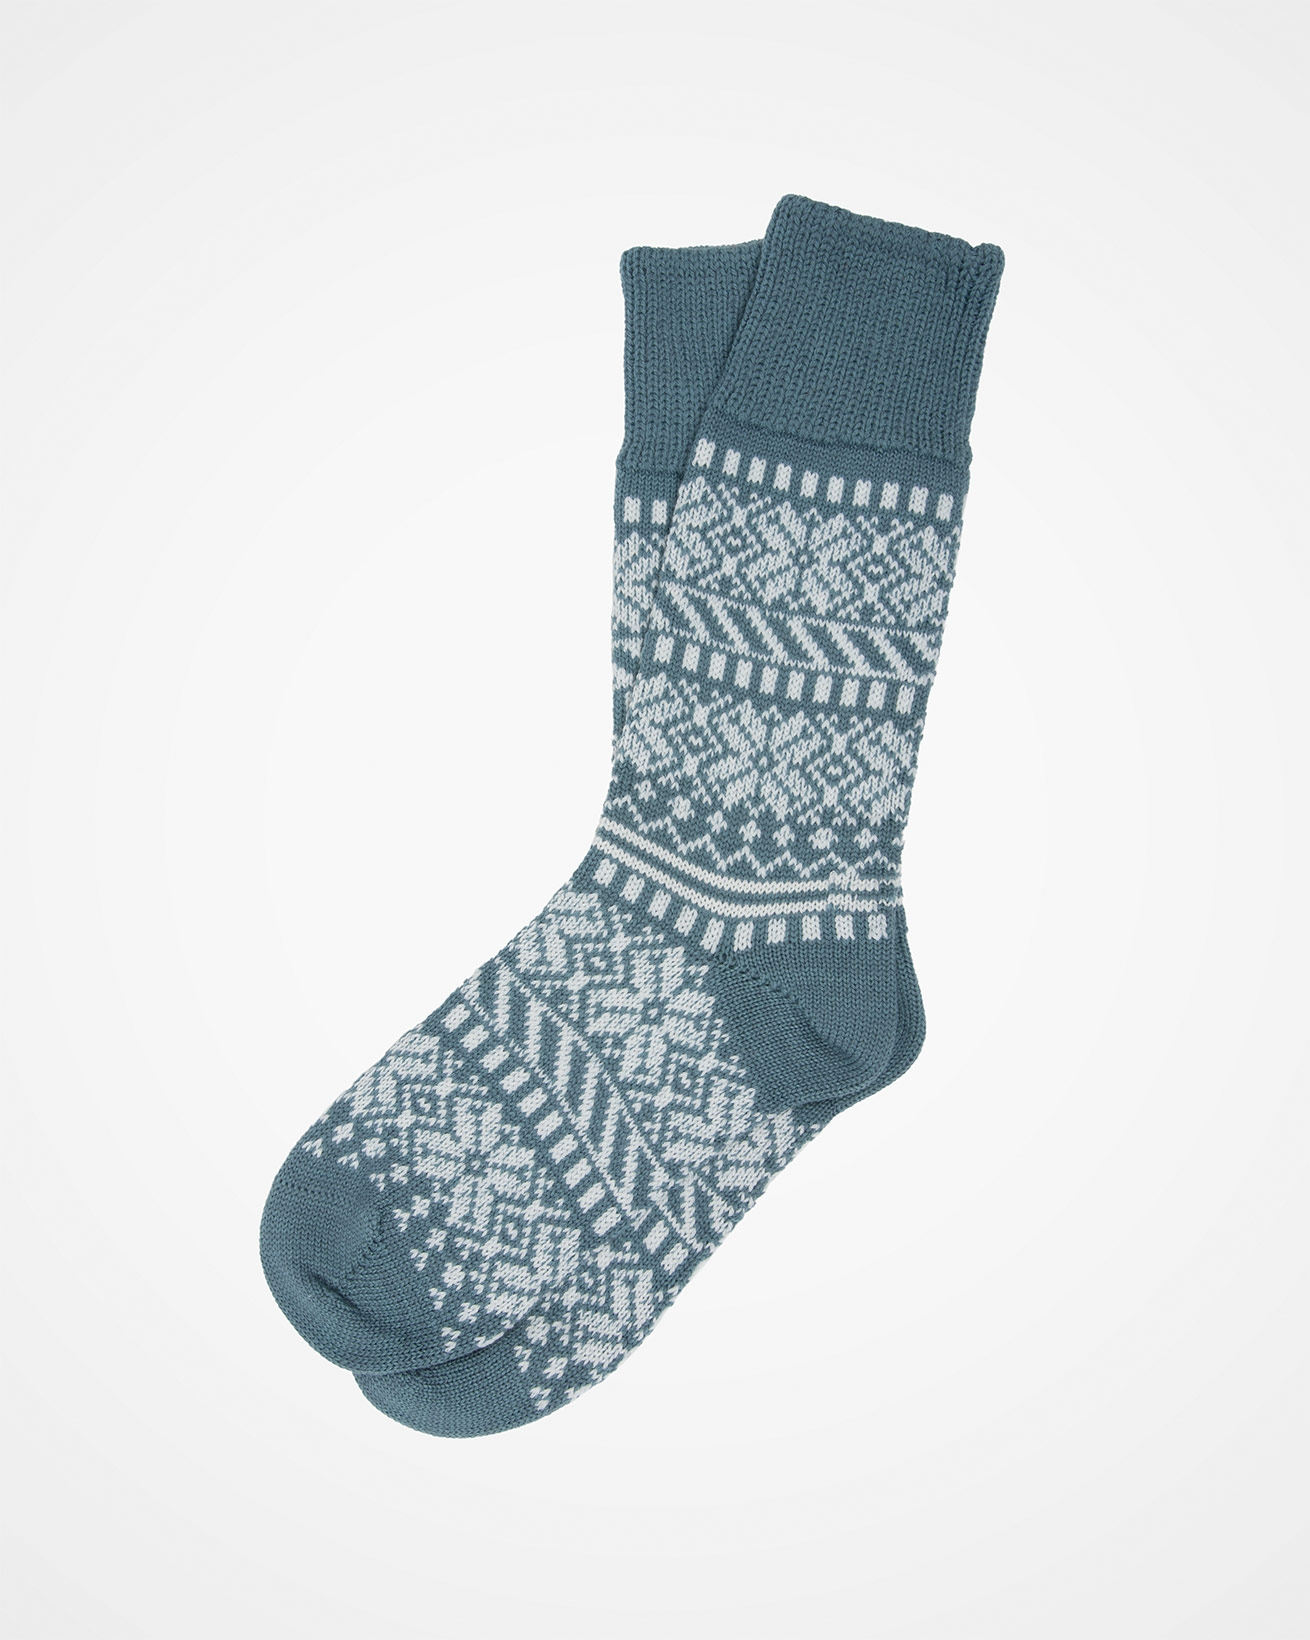 7761_ladies-fairisle-merino-cotton-socks_vintage-blue_flat.jpg